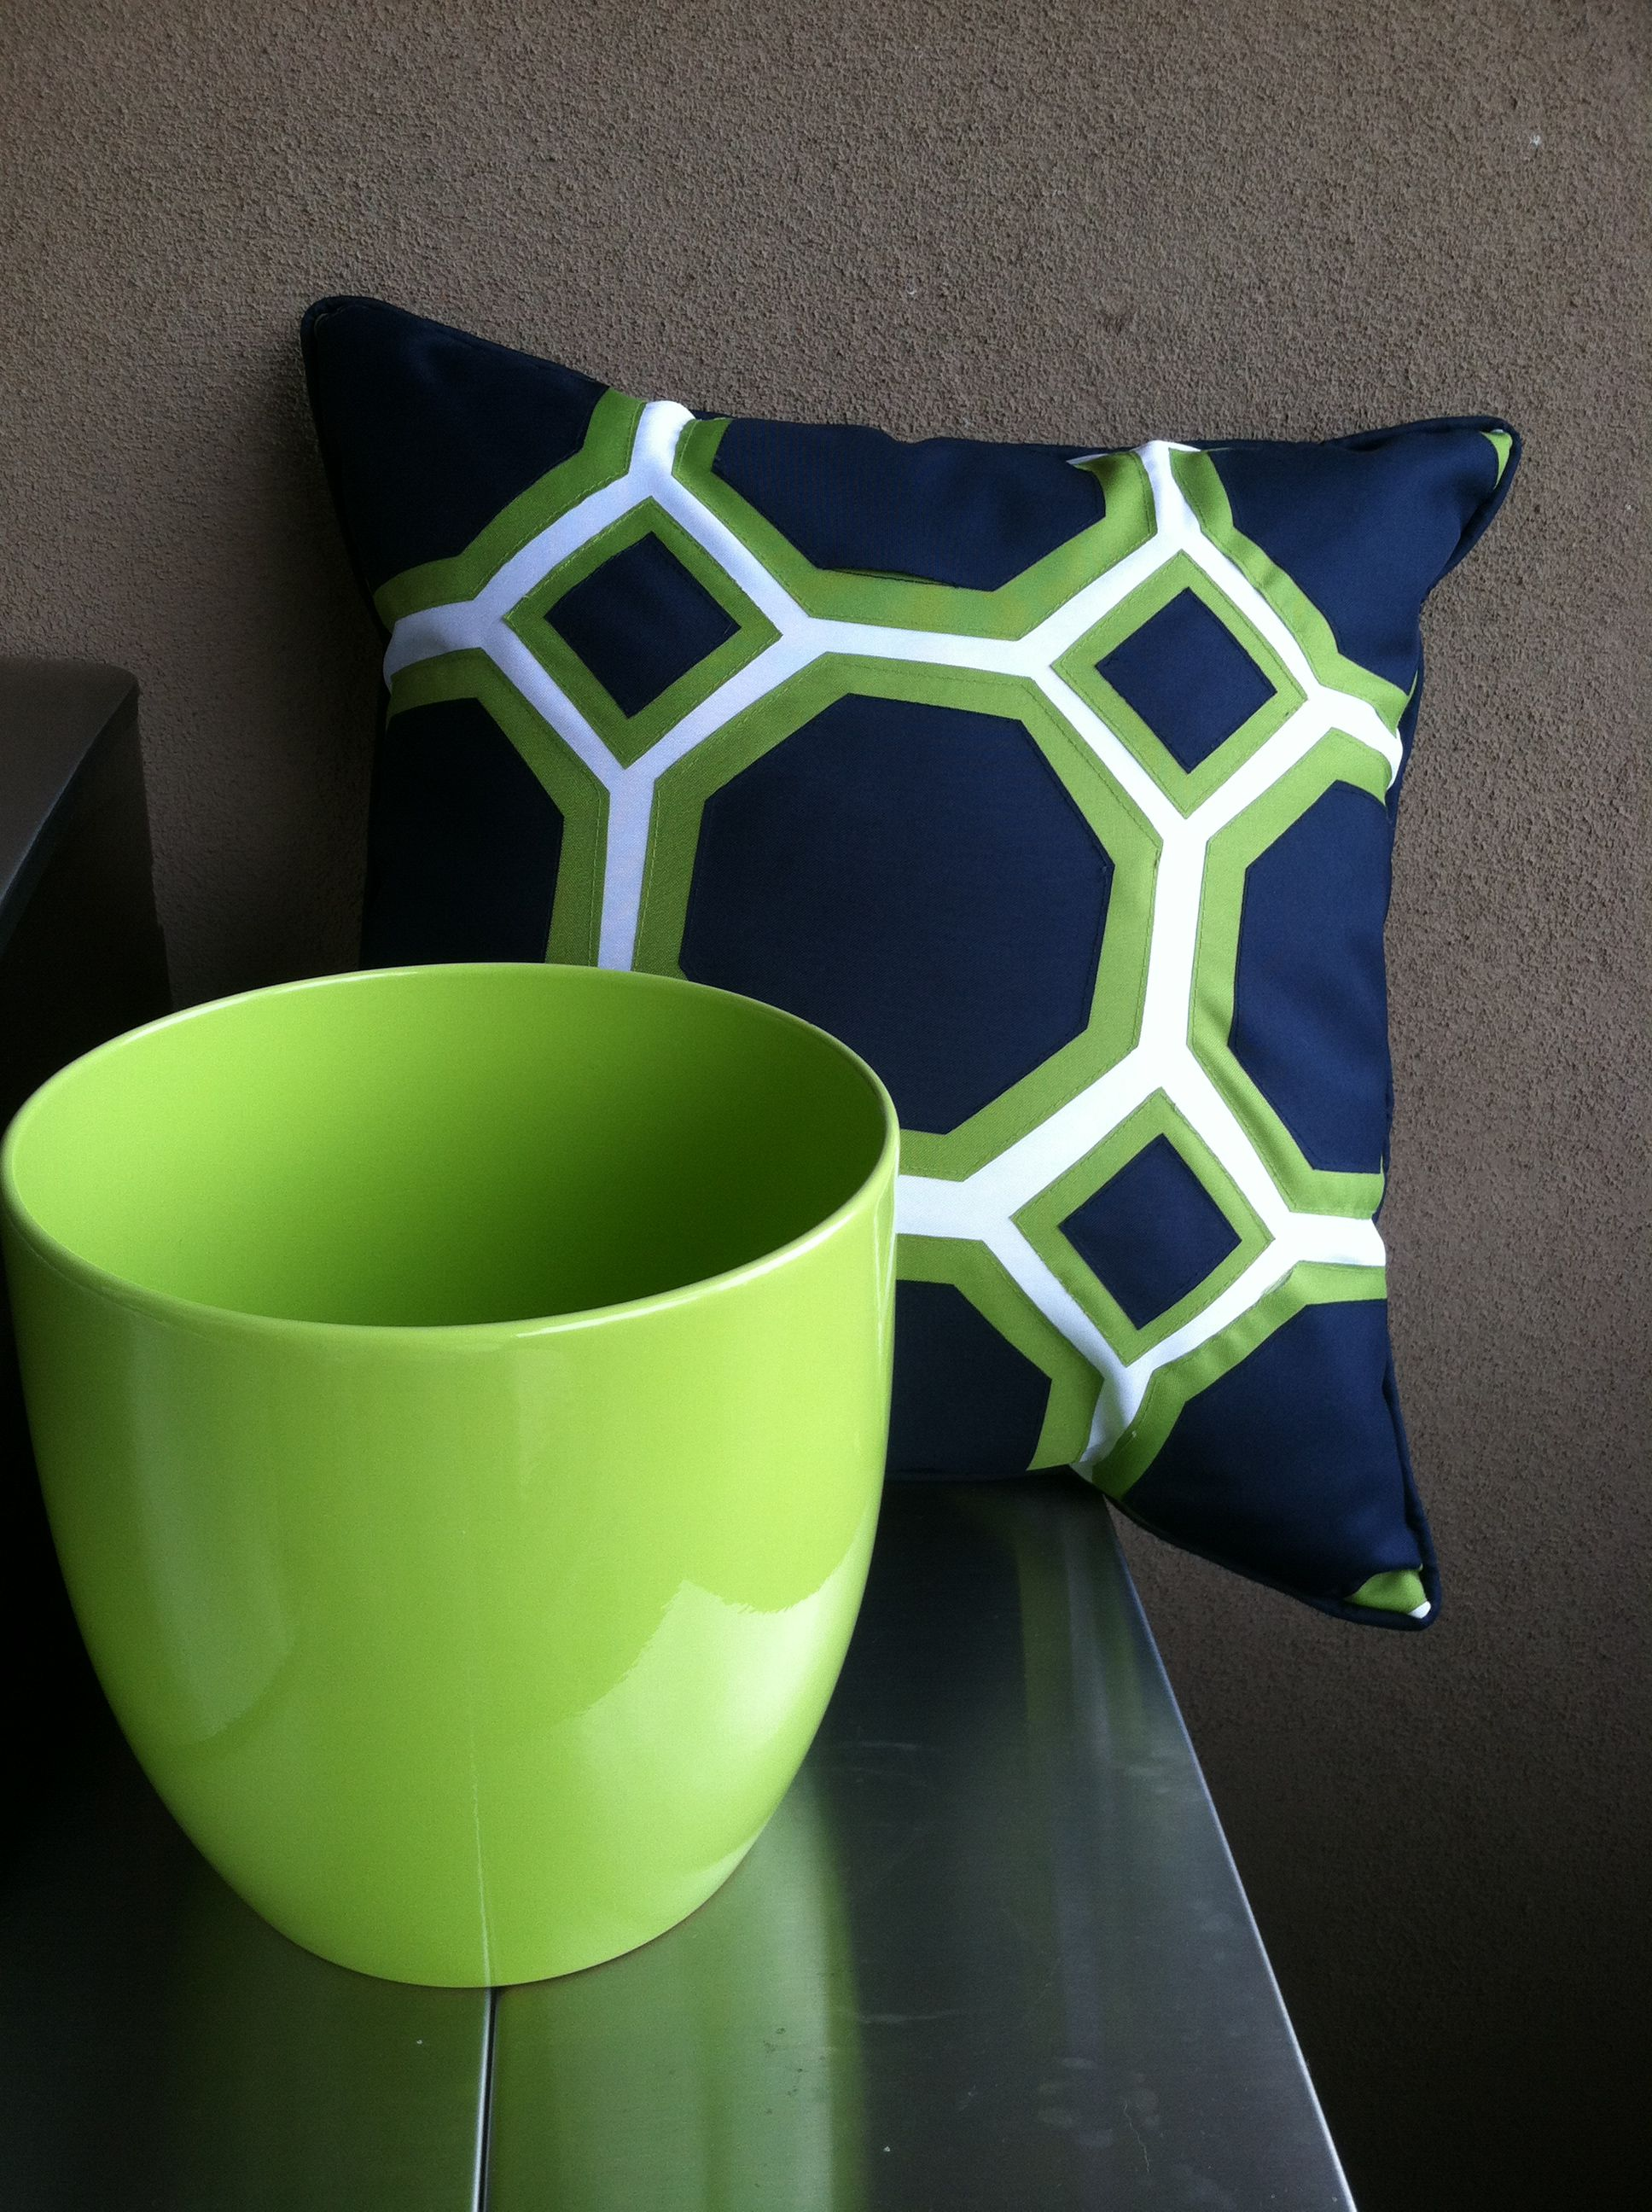 blue u0026 green pillow cover many sizes navy blue lime green aqua white beach decor sofa pillow harford canal premier prints freeship blue pillow